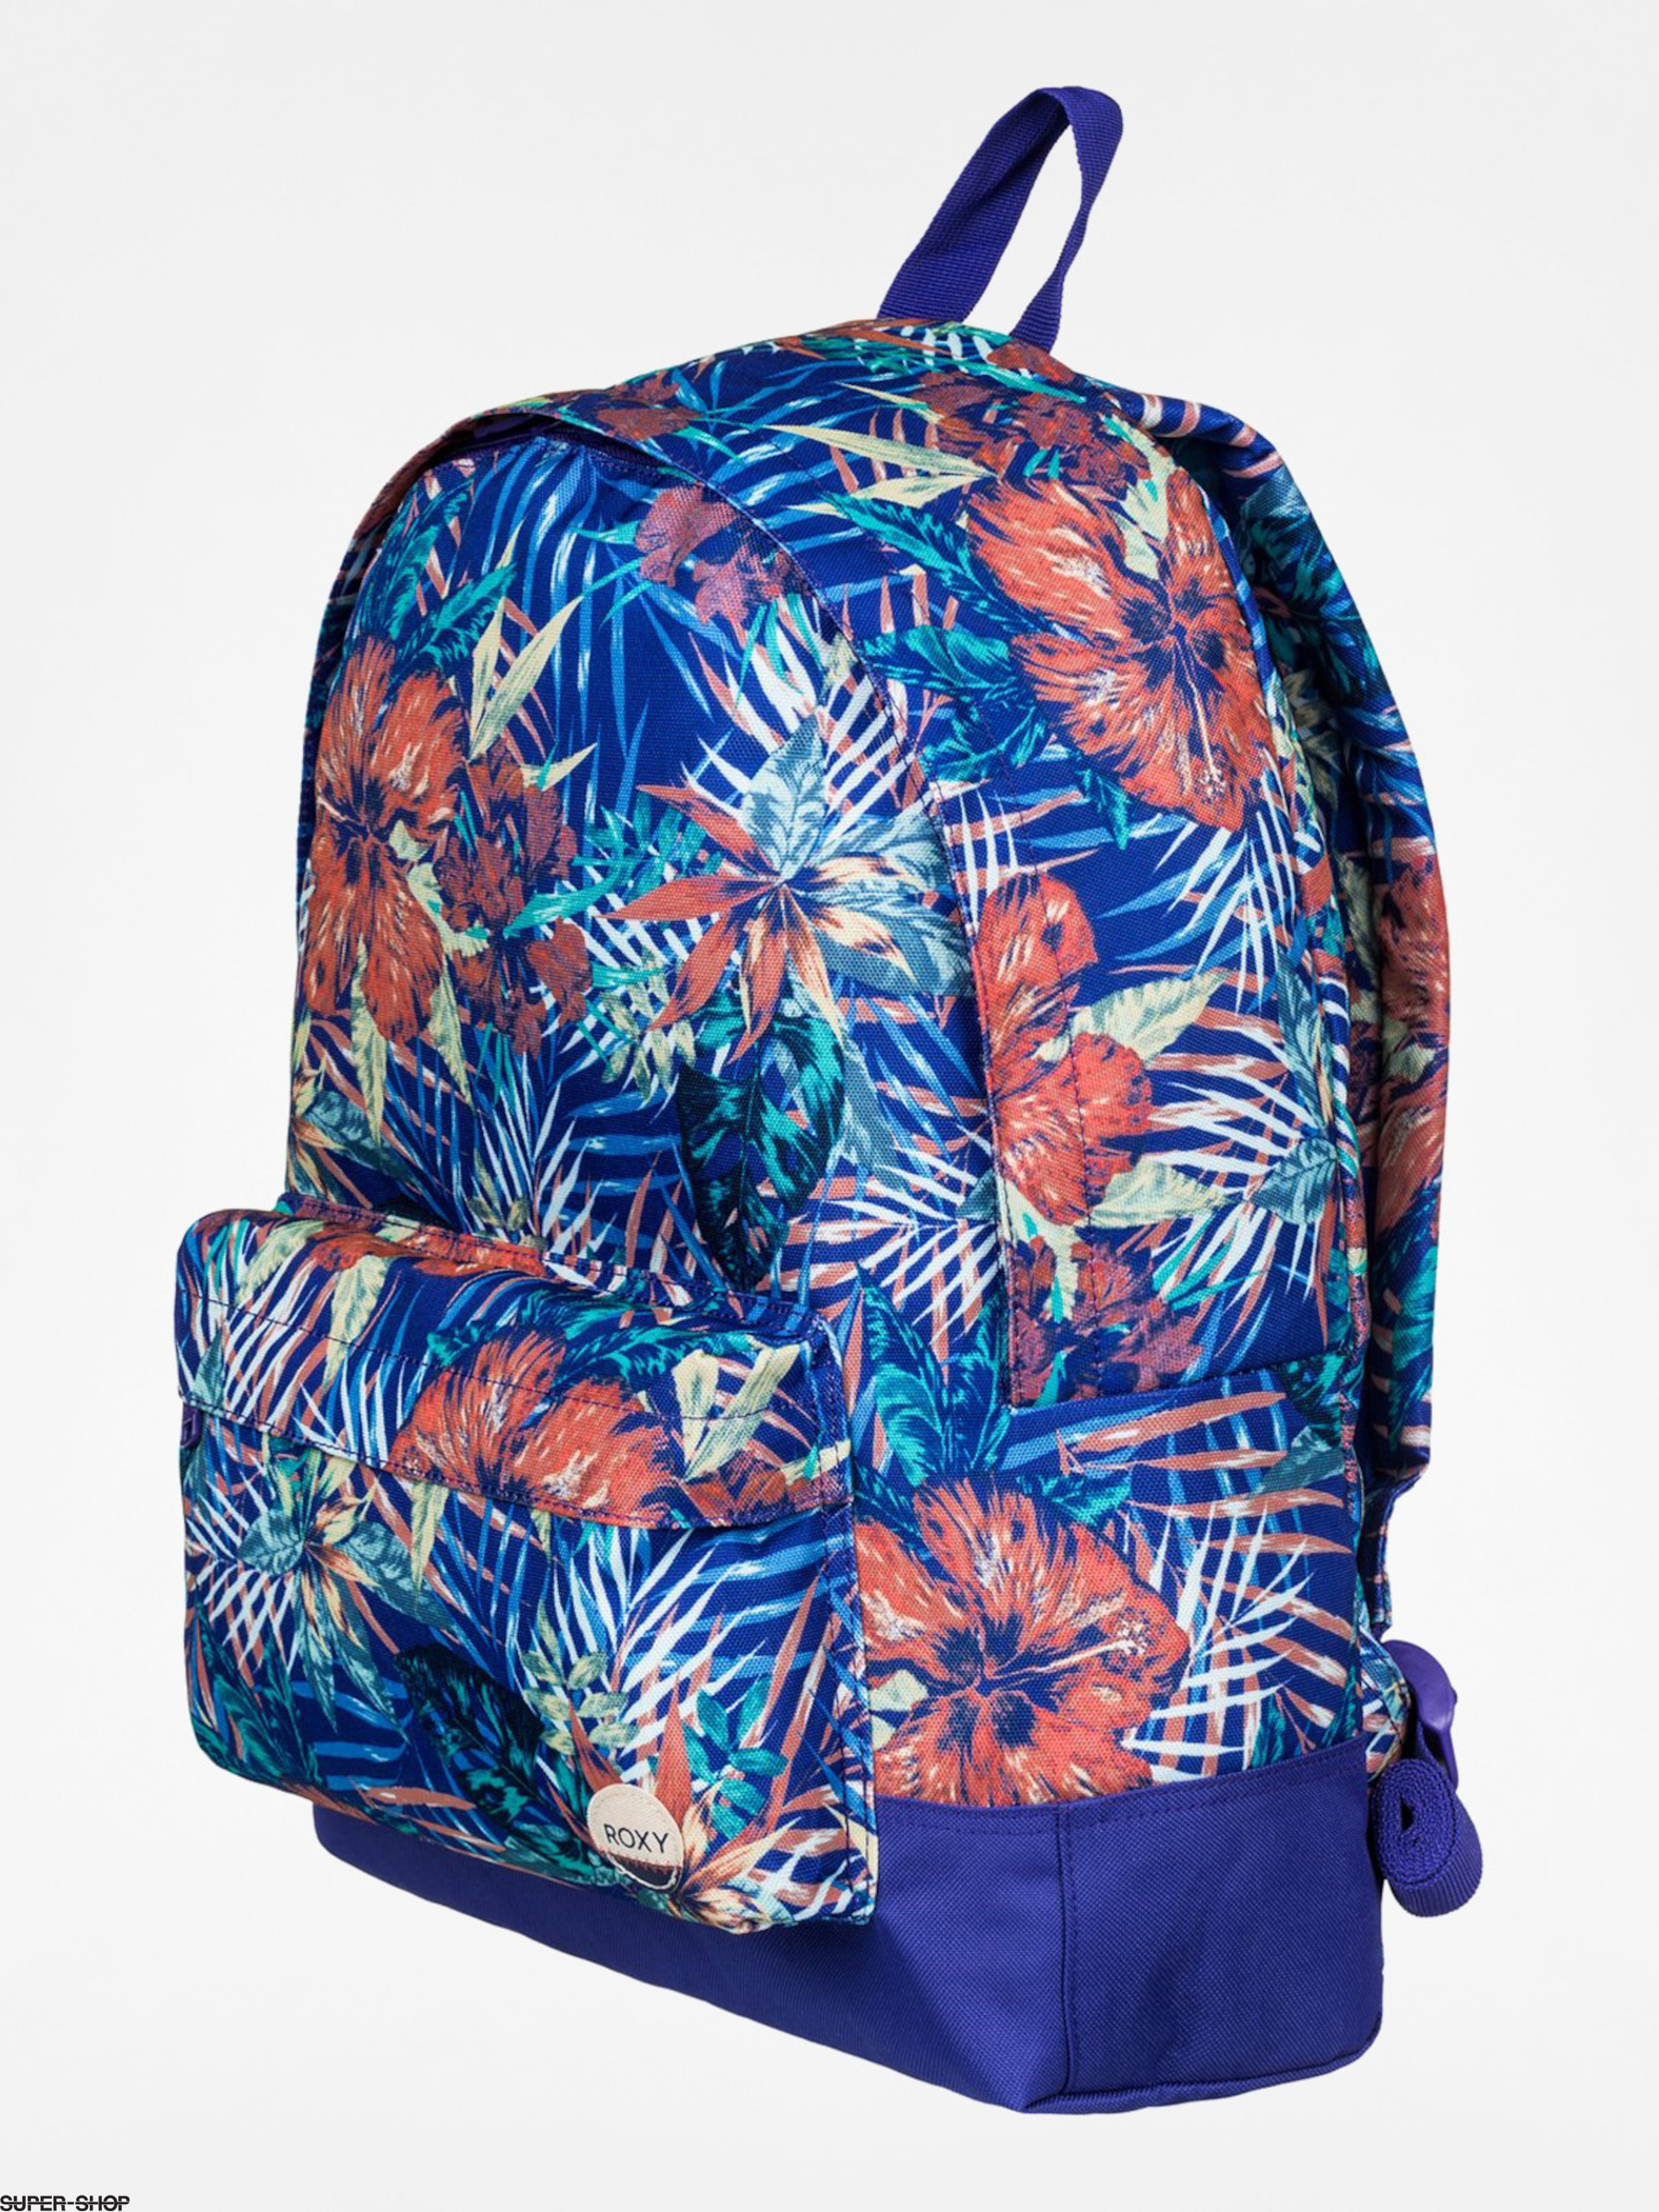 8d20a9caf45 Roxy Backpack Sugar Baby | The Shred Centre